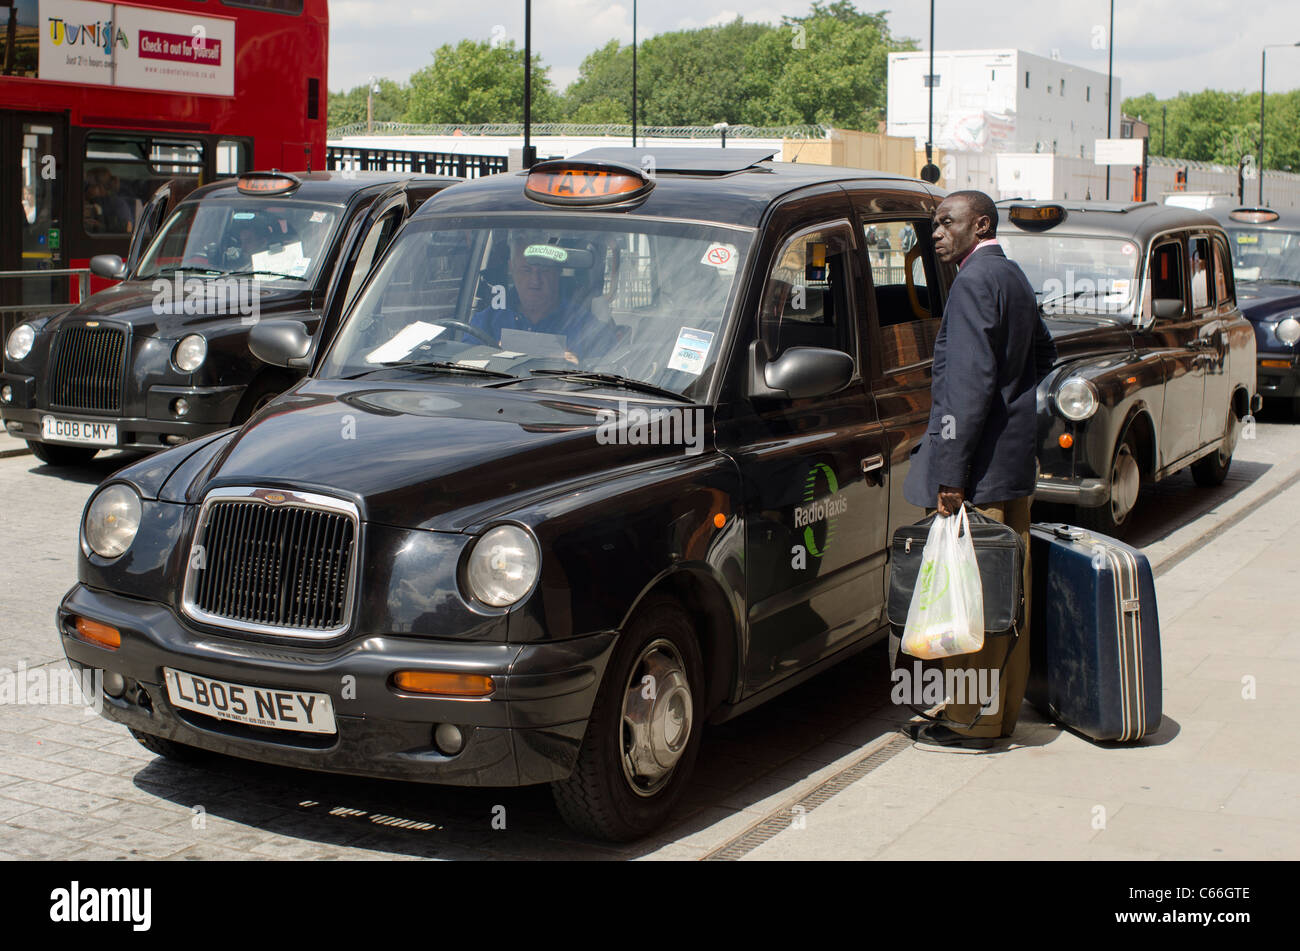 Gentleman waiting outside a Black Cab in London, England. - Stock Image